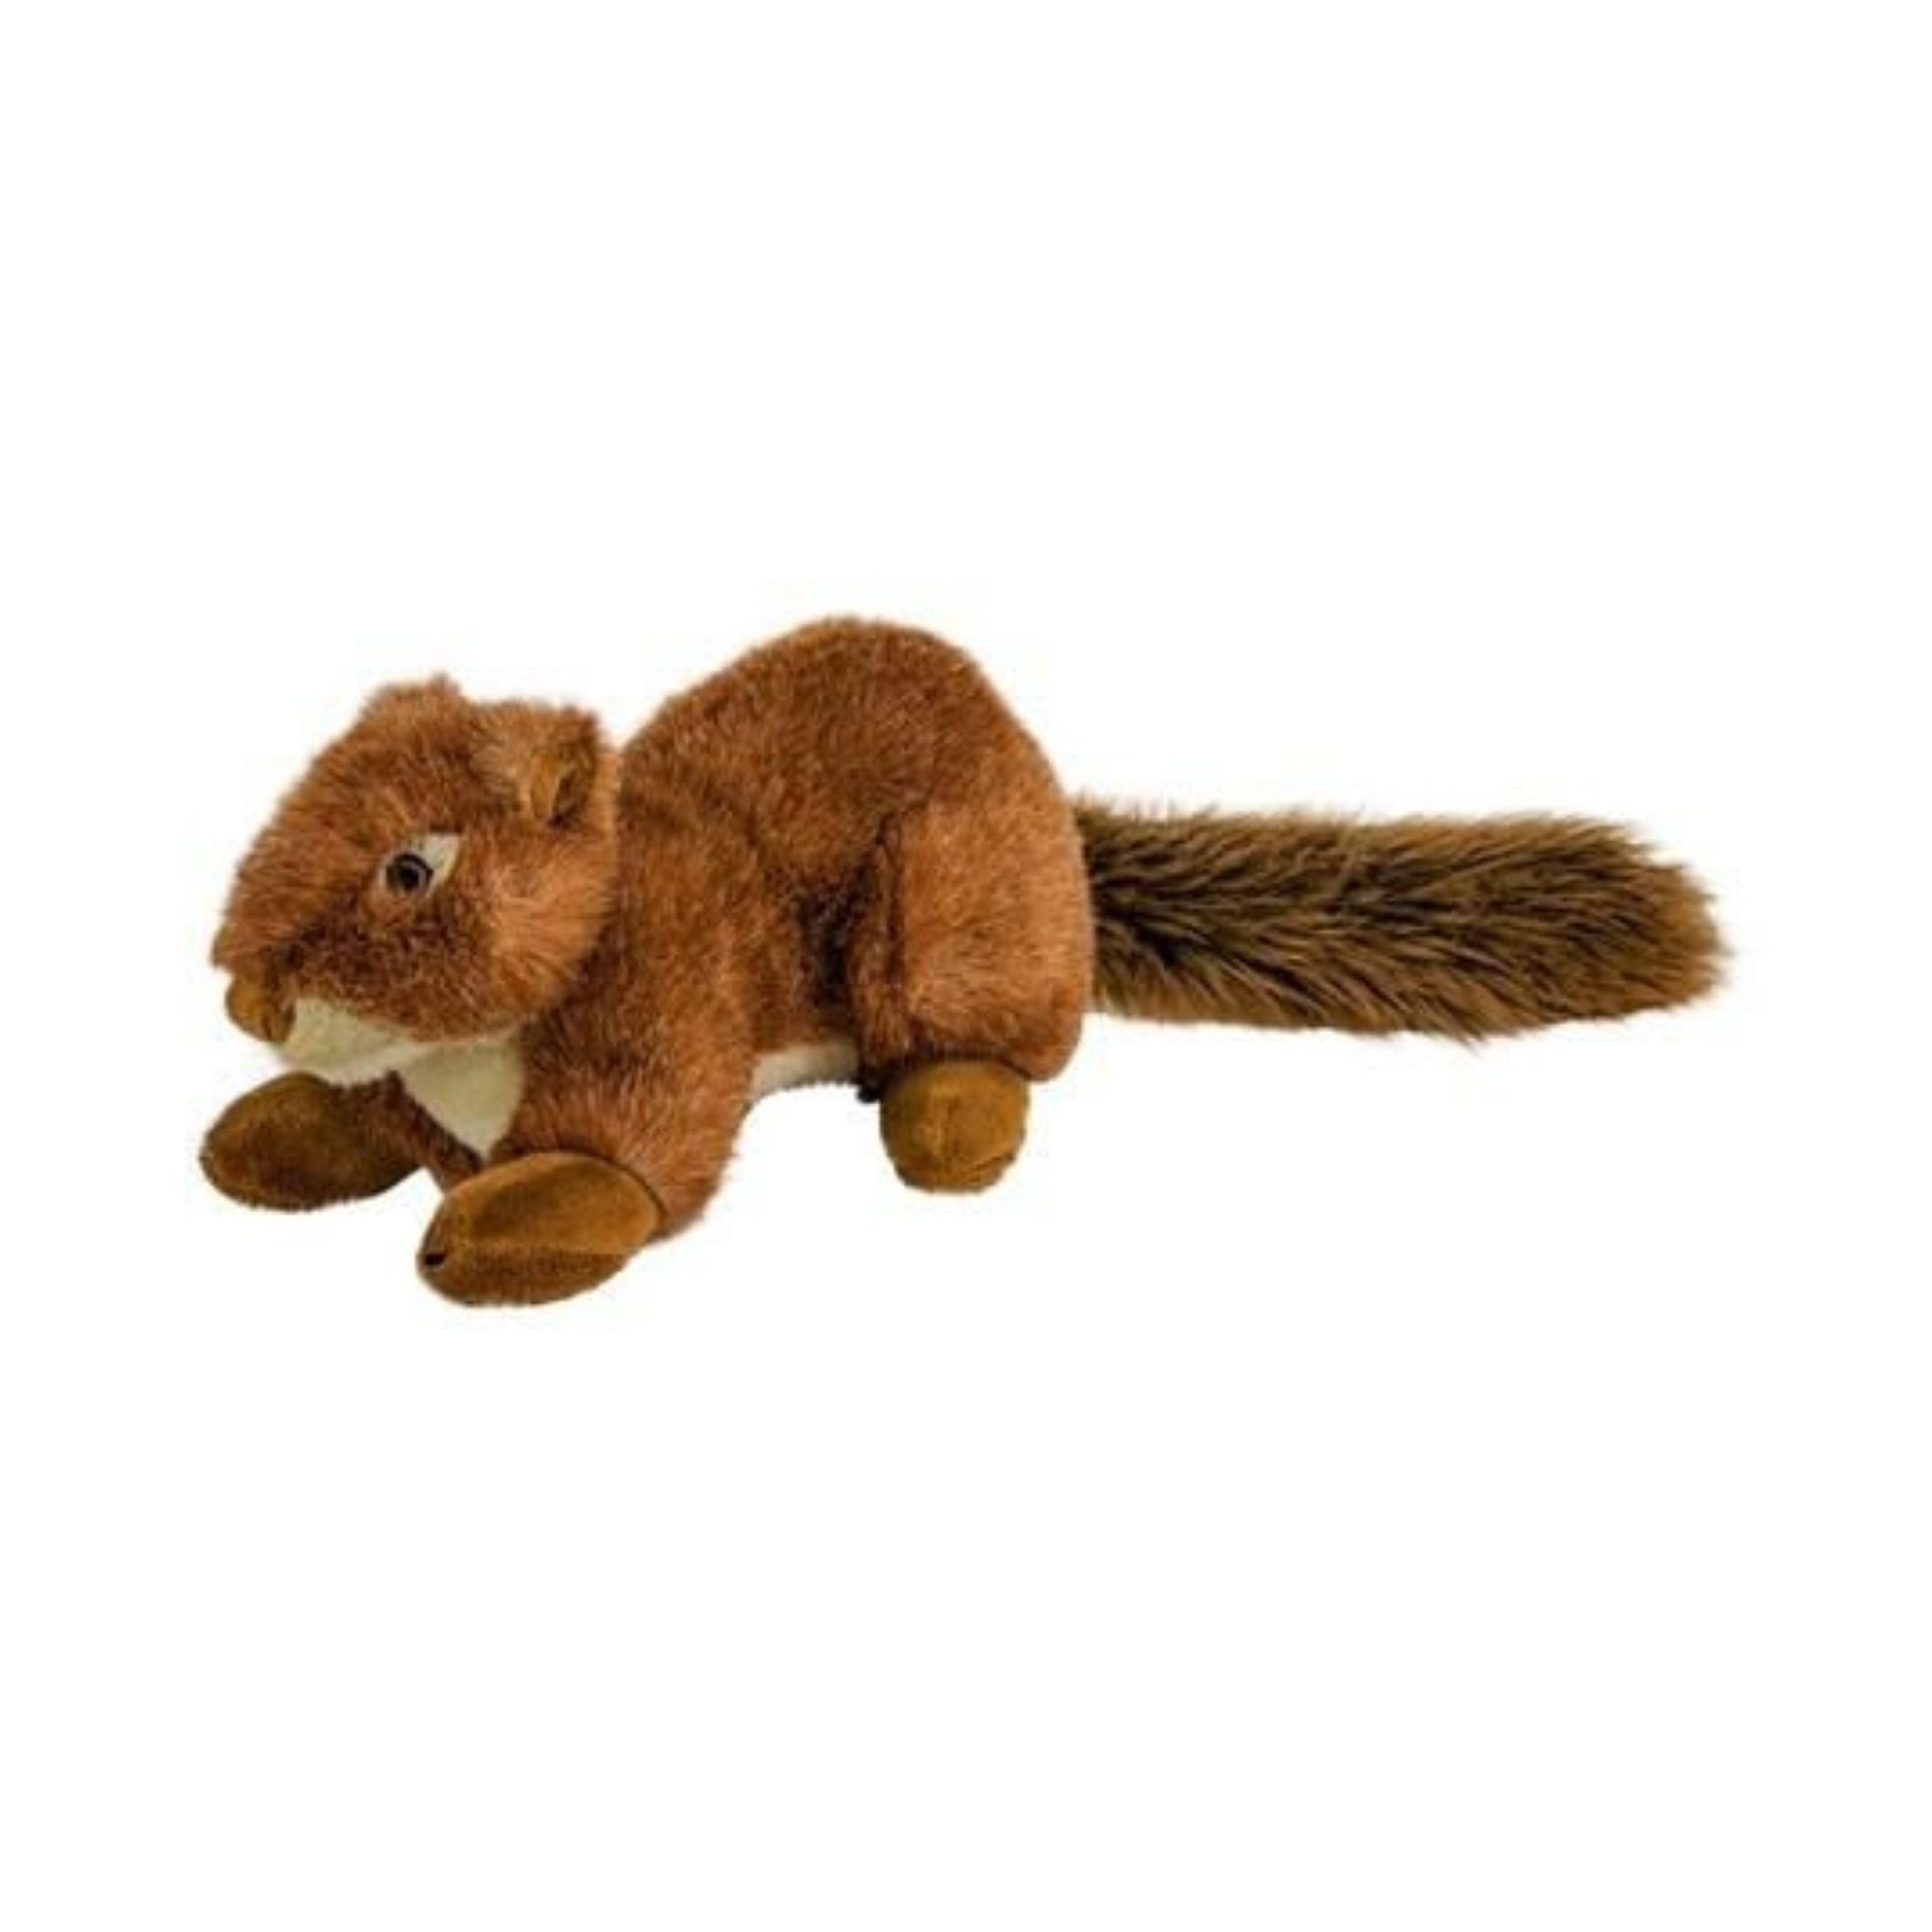 Fluff & Tuff Squeaker-less Red Squirrel, Durable Plush Dog Toys | Barks & Bunnies